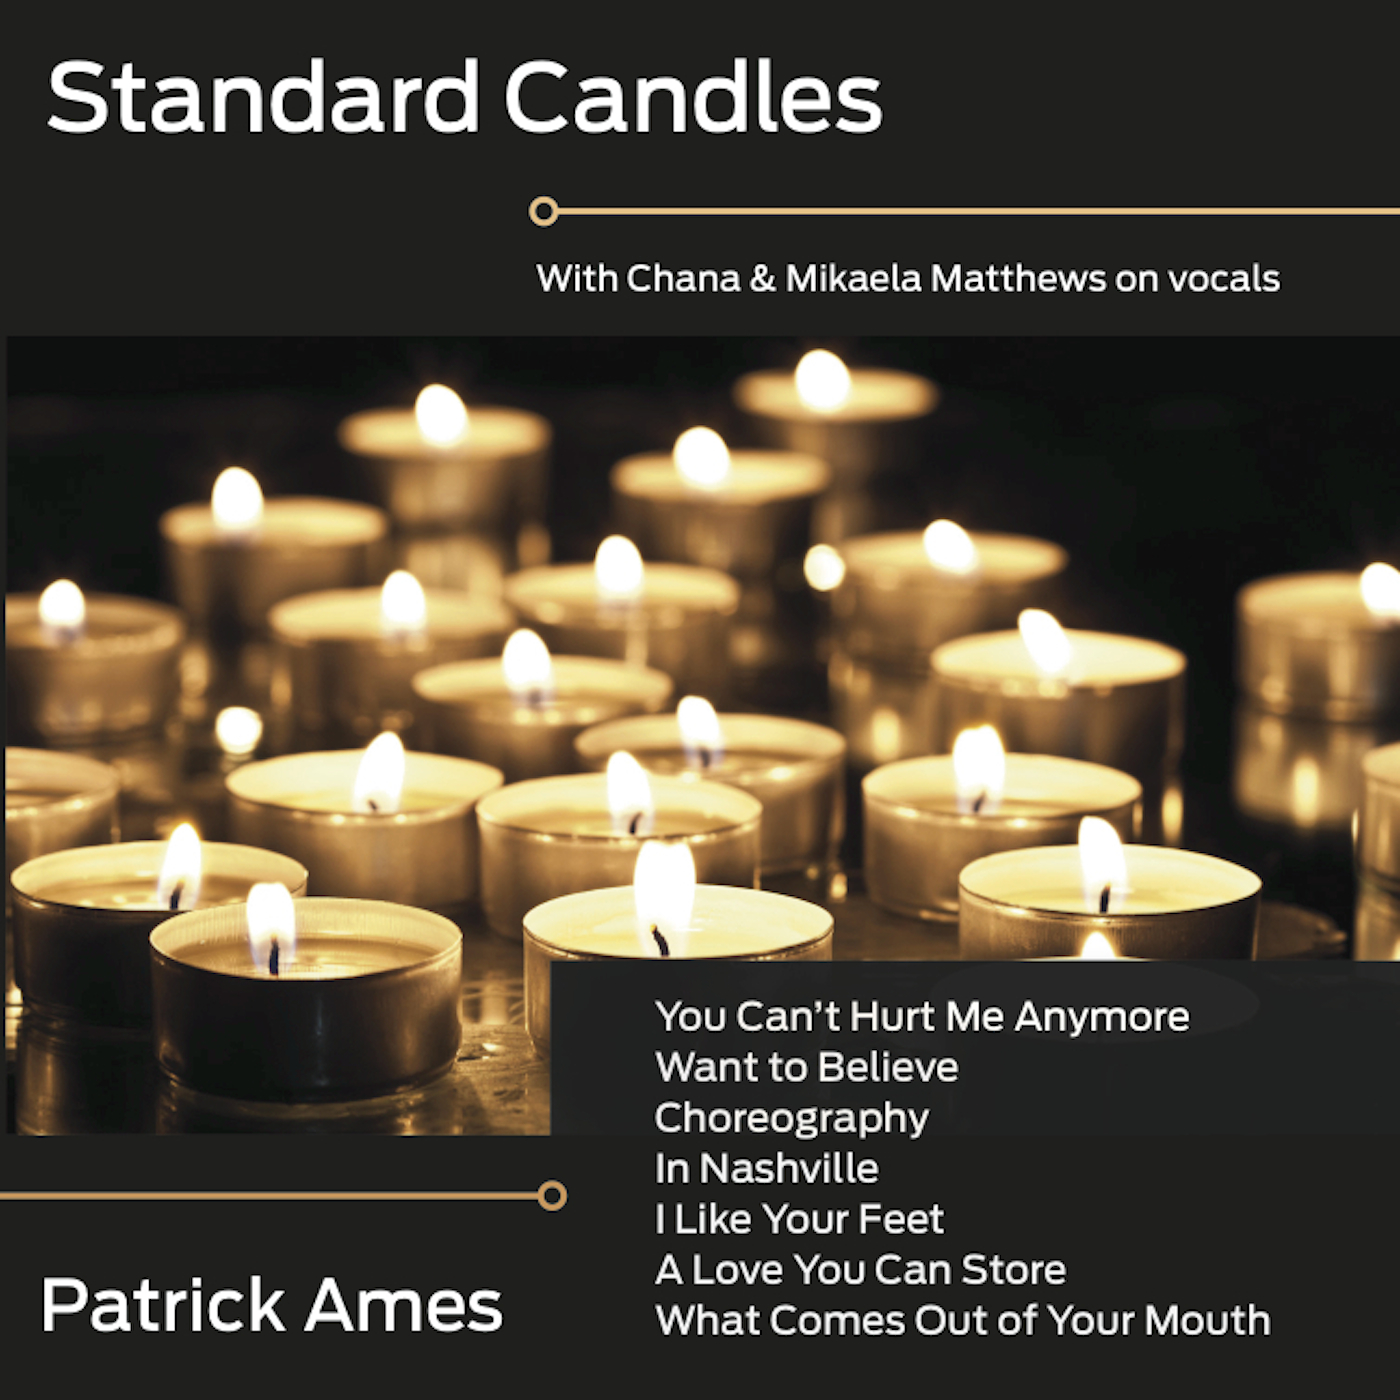 Patrick Ames - Standard Candles